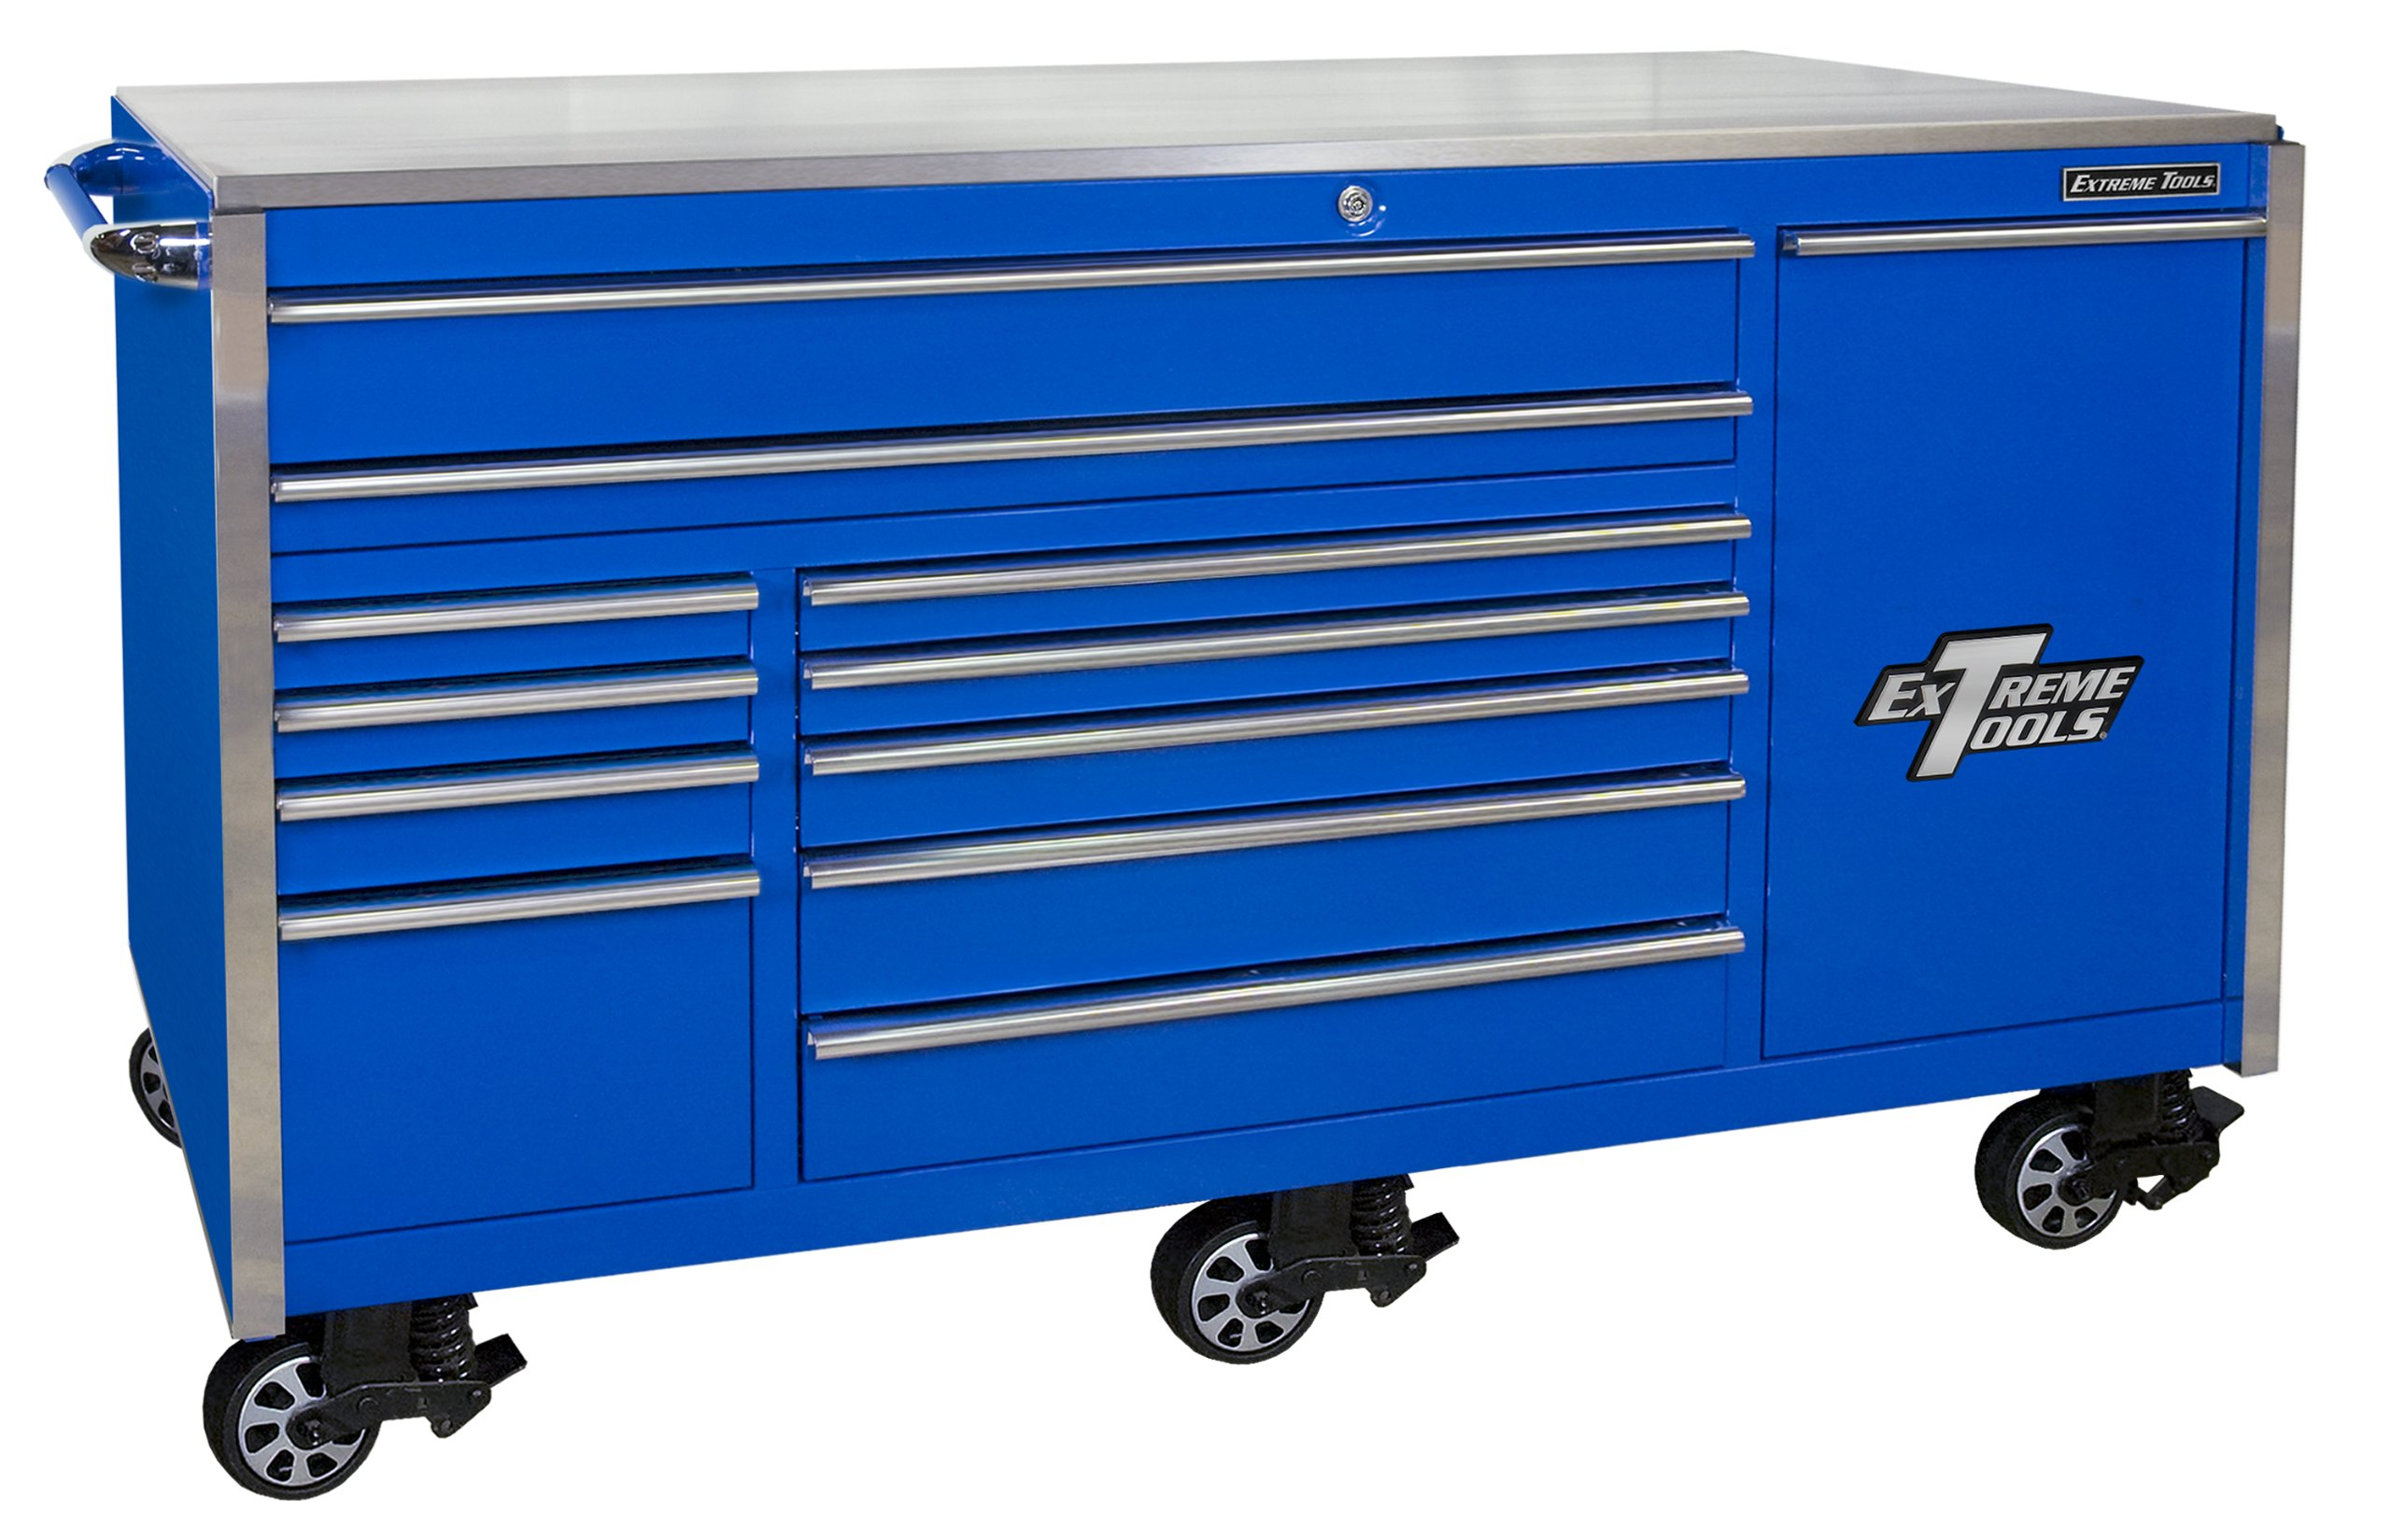 Extreme Tools EX7612RCBL 12-Drawer Roller Cabinet Vertical Drawer Power Strip with Ball Bearing Slides, 76-Inch, Blue High Gloss Powder Coat